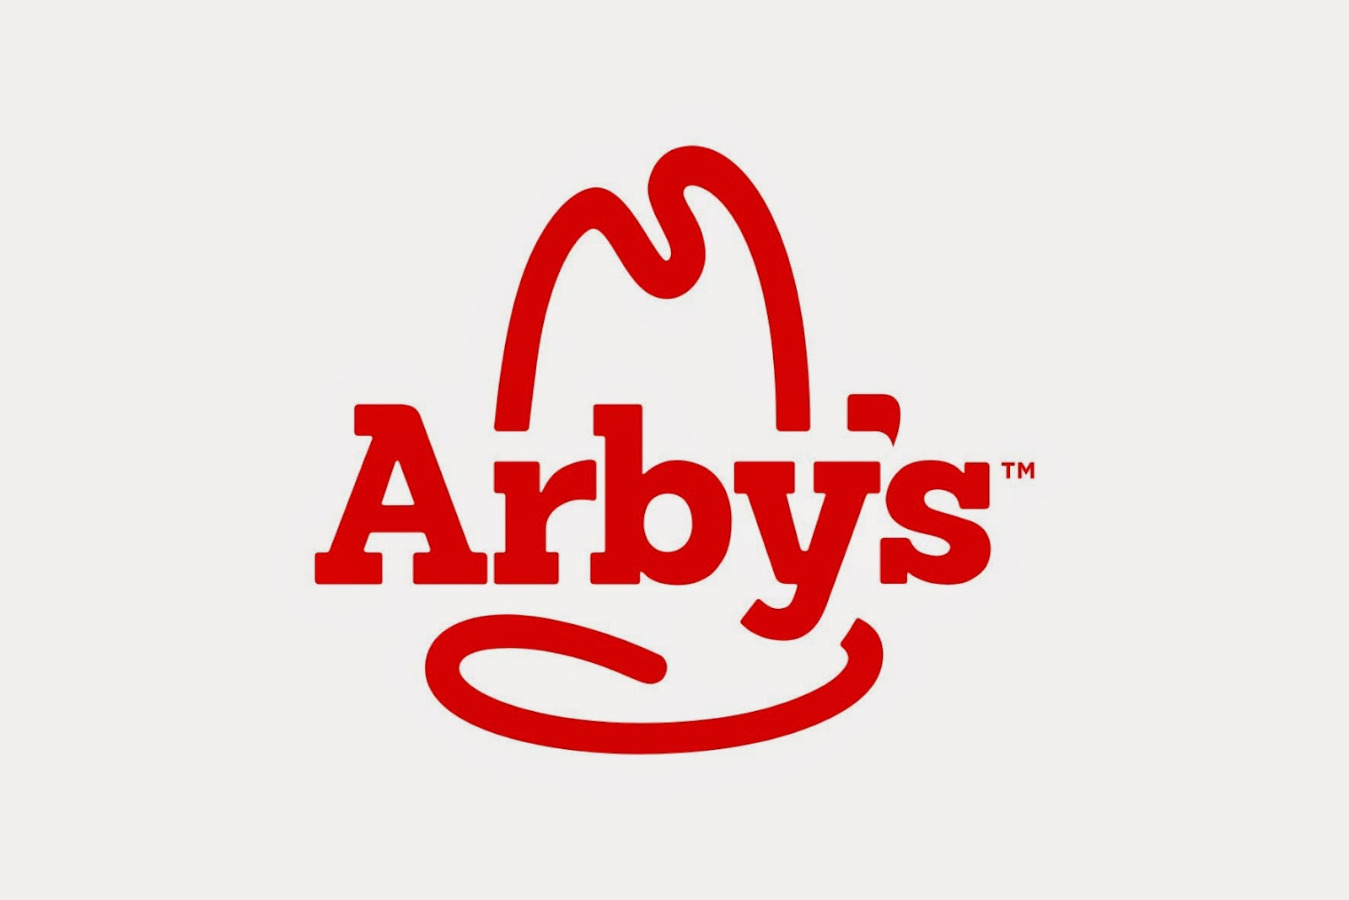 ARBYS $5-$9 INSTANT DELIVERY